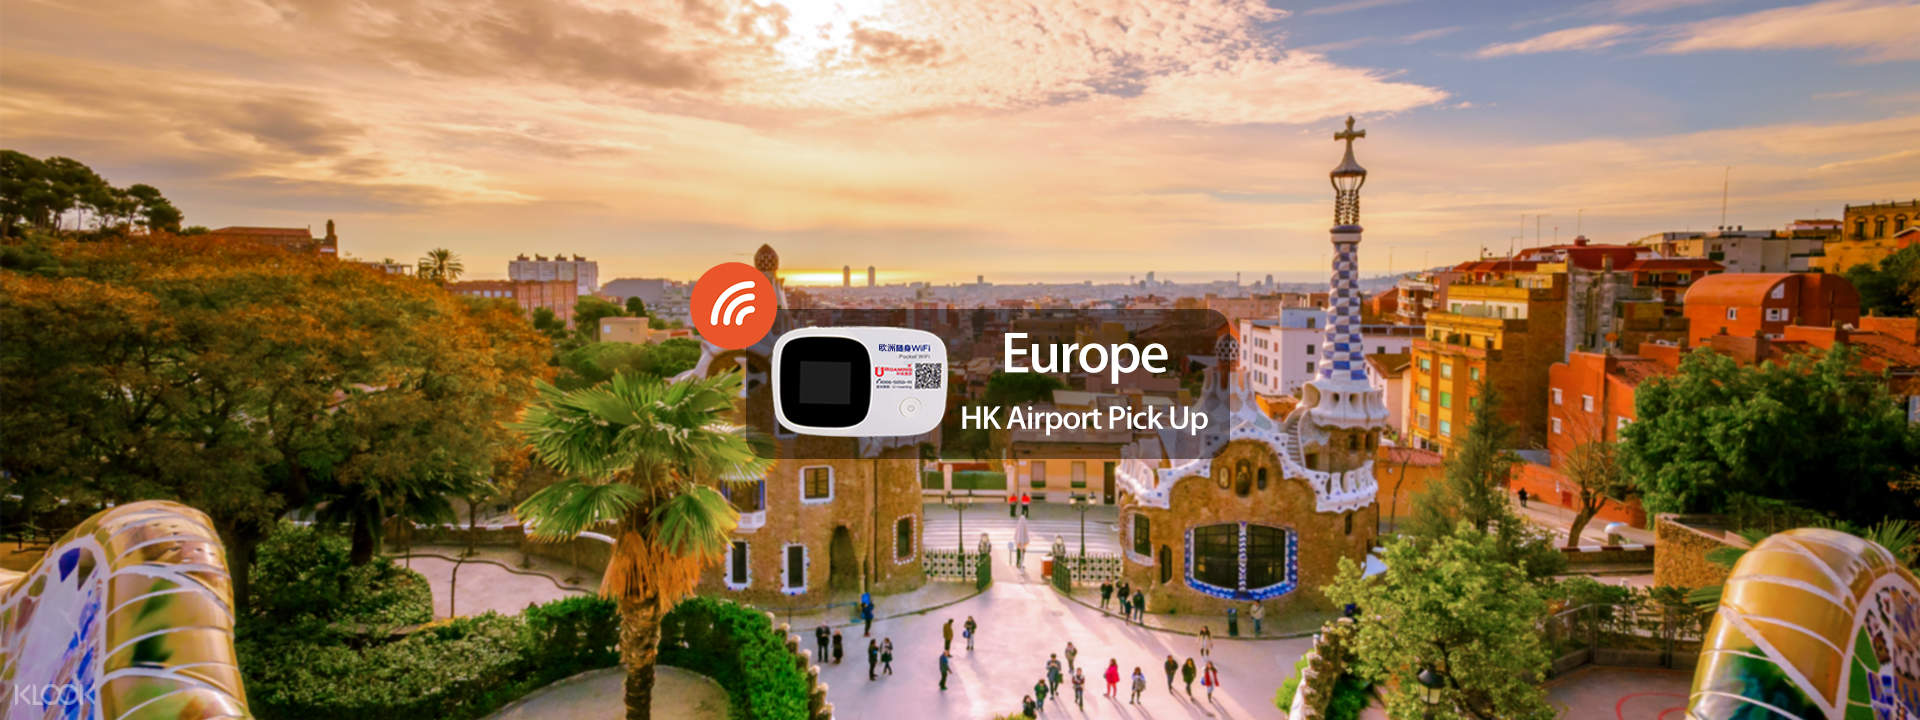 Europe WiFi Device (Hong Kong Pick Up) - Klook